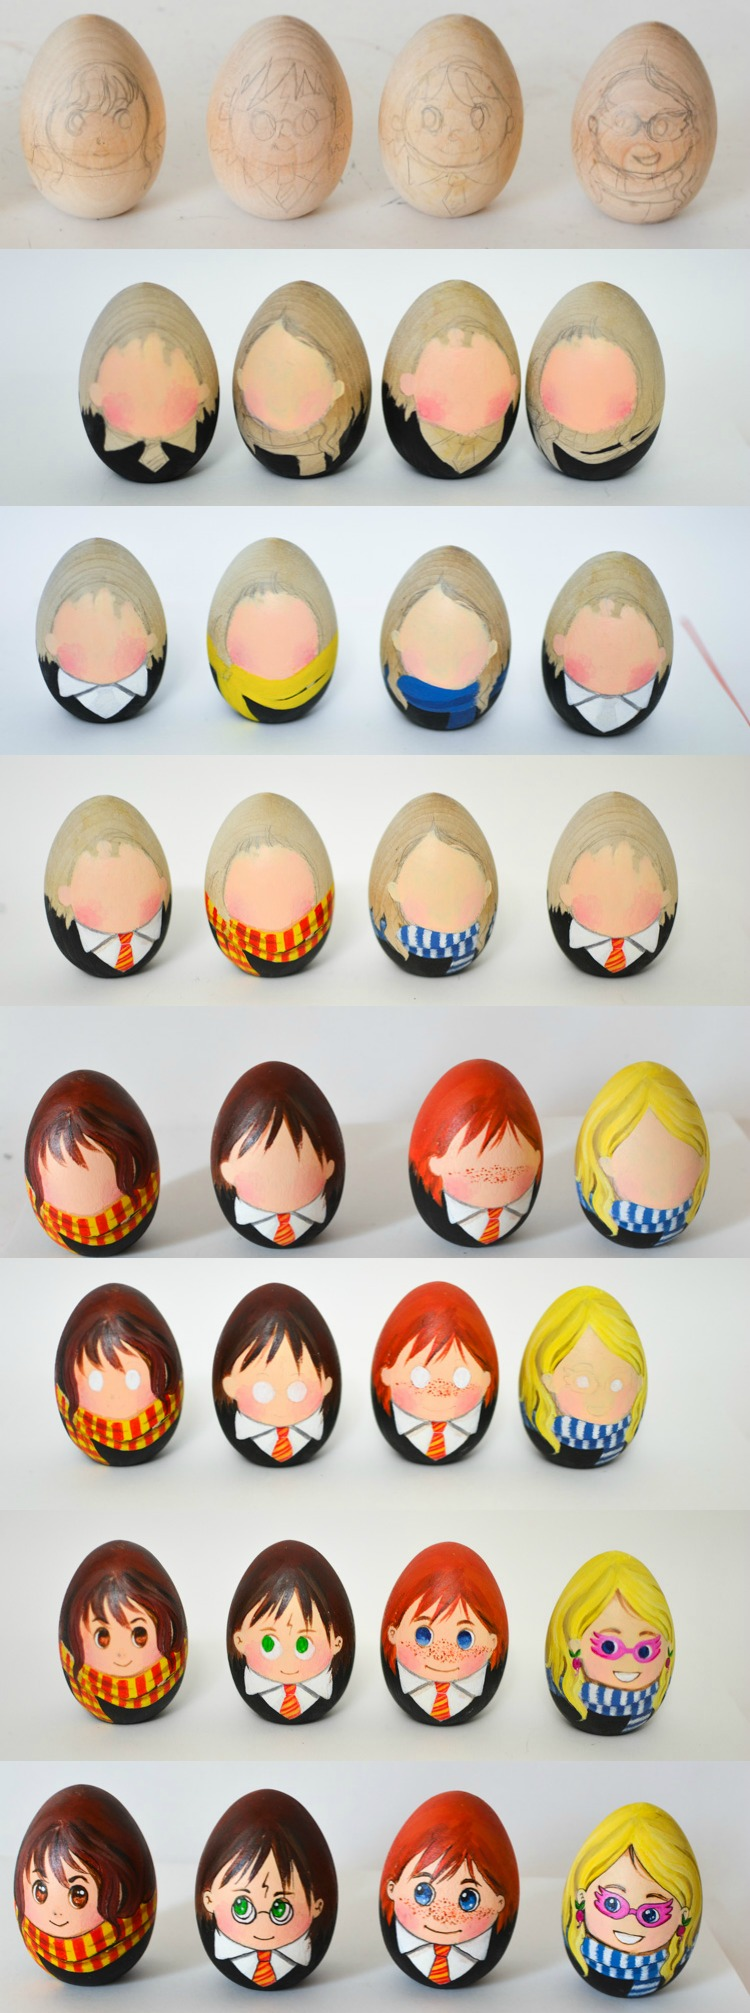 Harry Potter Book Easter Eggs : How to paint harry potter easter eggs adventure in a box